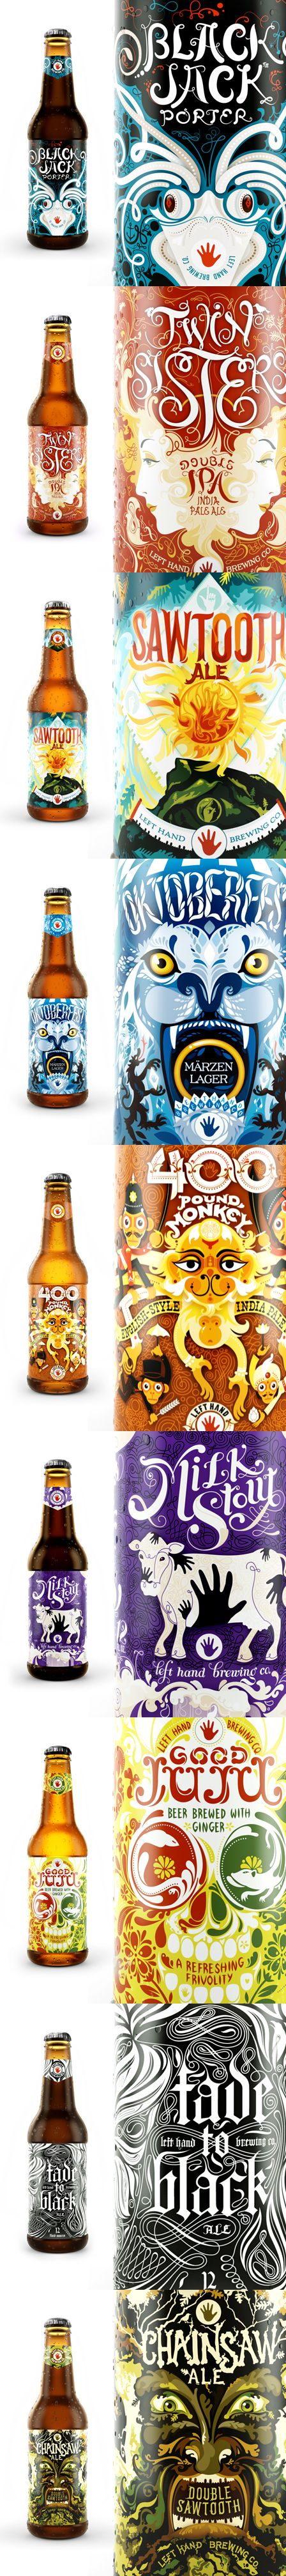 Left Hand Brewing Co. beer bottle design, awesome labels! Would make even more awesome candles after drinking the beer!